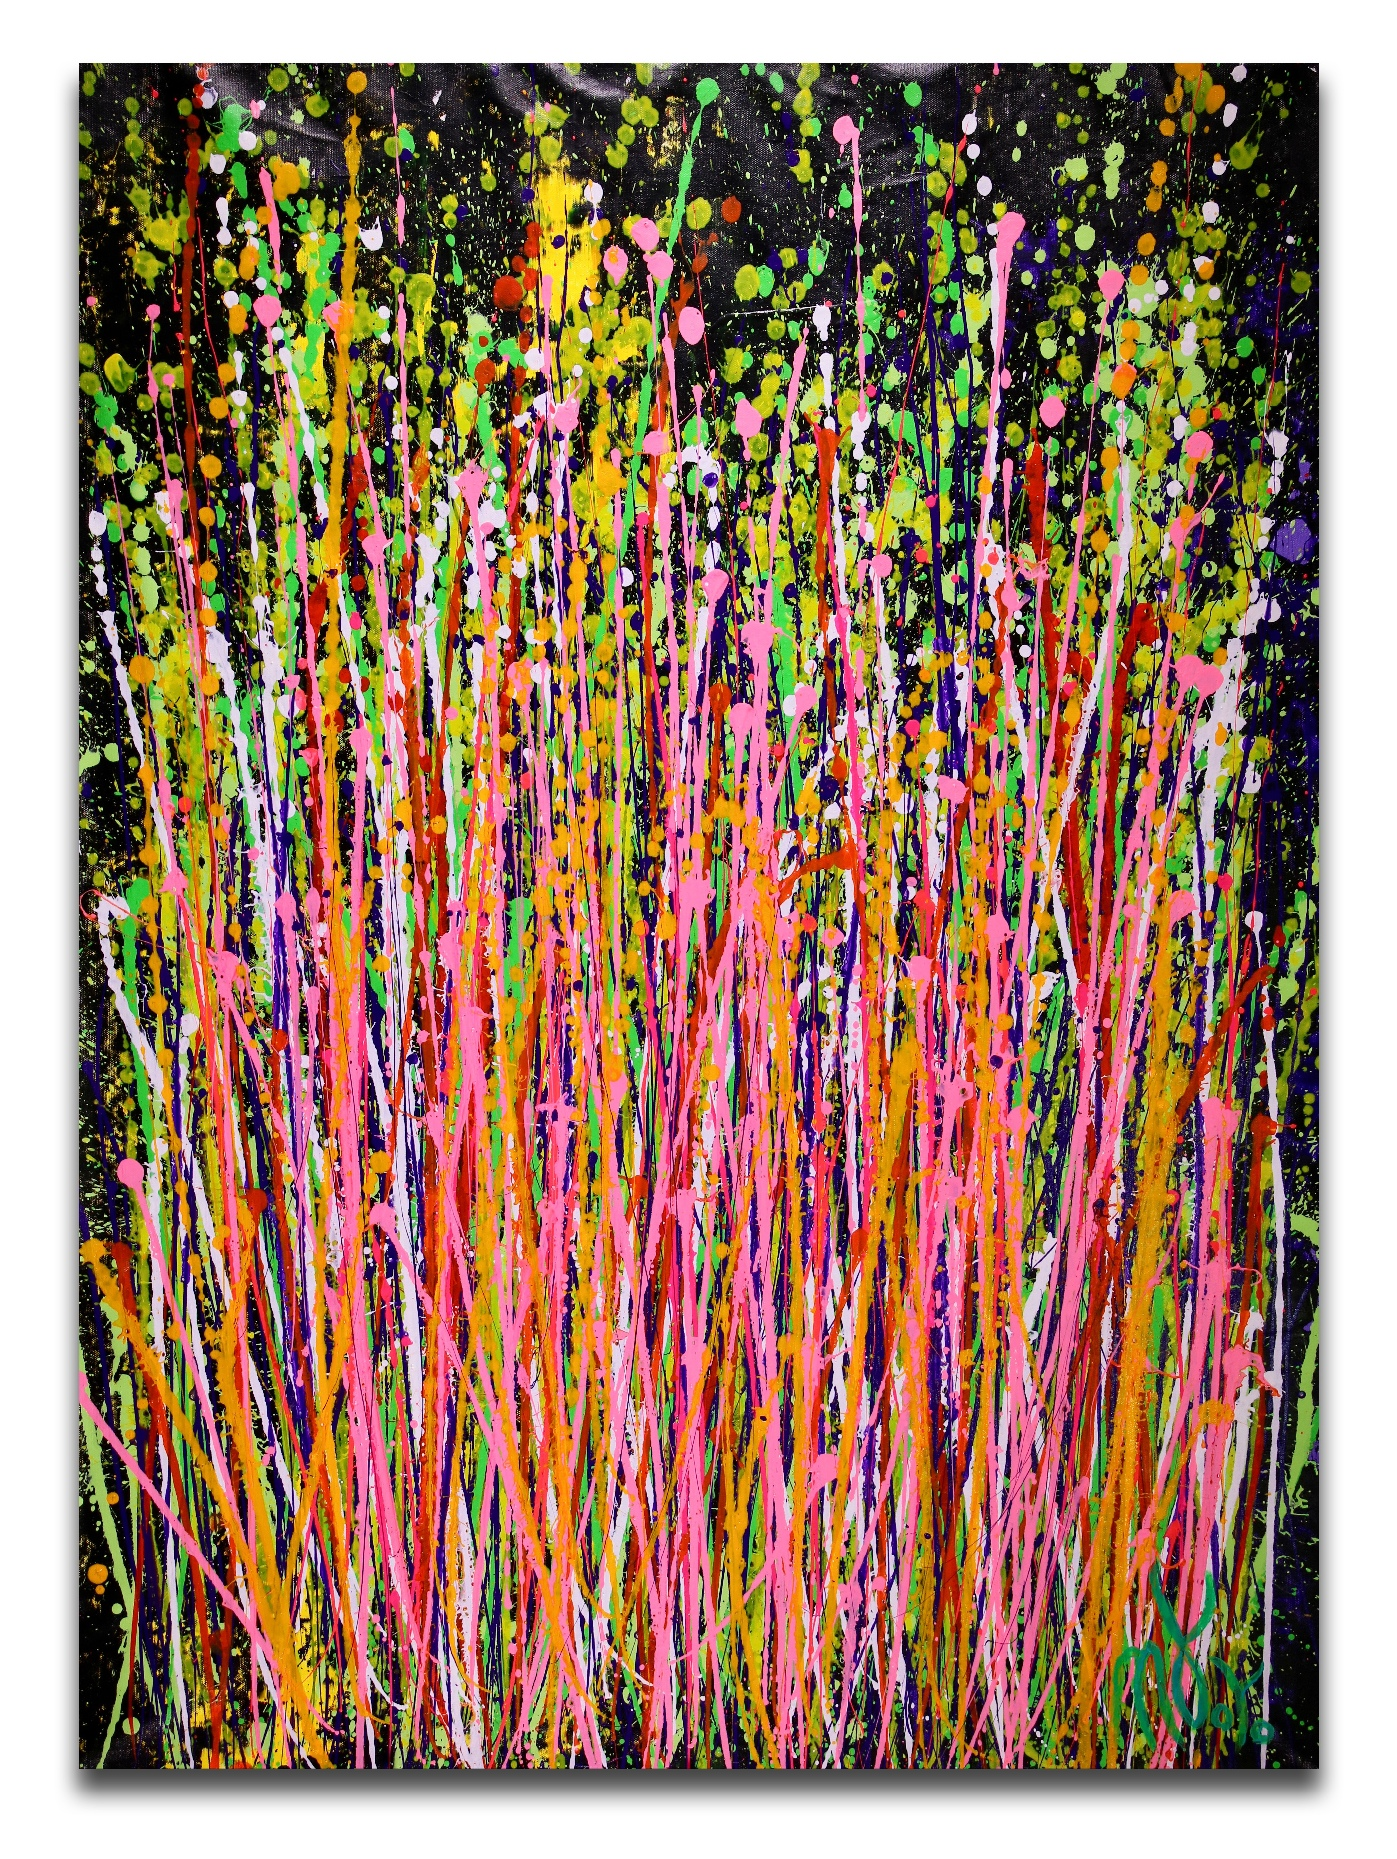 Consciousness Garden (2018) Abstract Acrylic painting by Nestor Toro